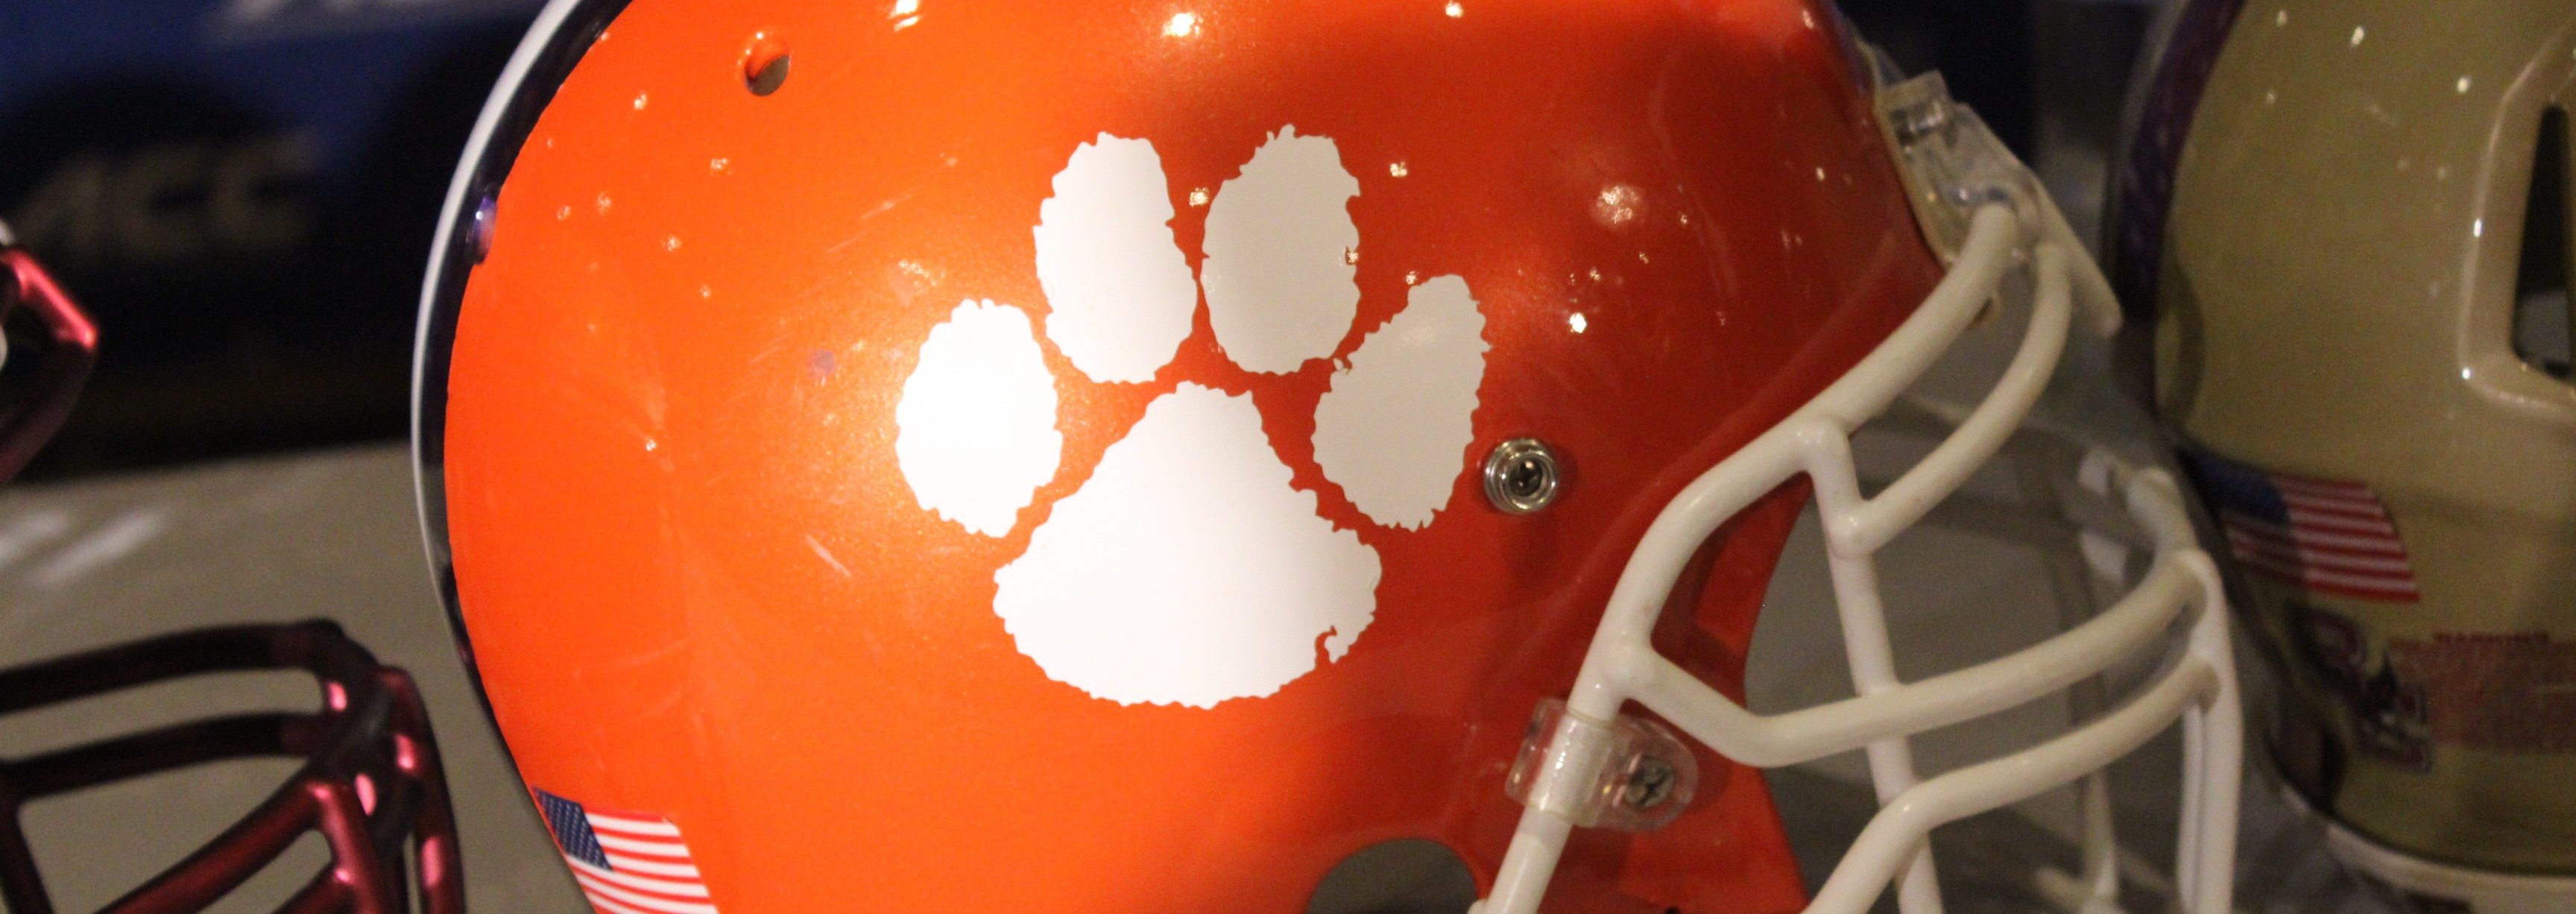 Clemson Helmet Fitted 2014 ACC Kickoff Photo by Mark Blankenbaker